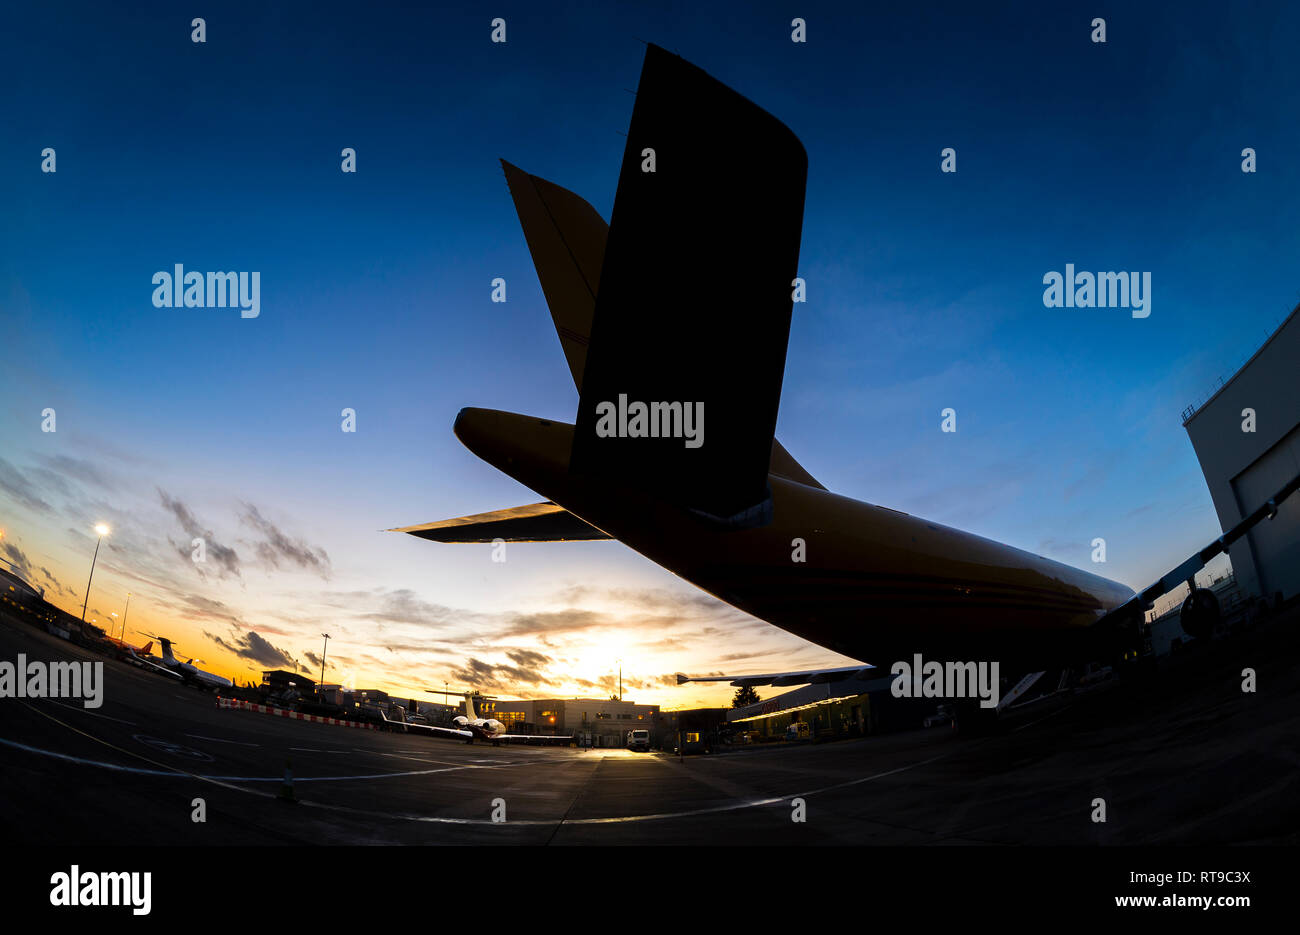 Silhouette of the tail fins of an aeroplane at Luton airport at dusk. - Stock Image